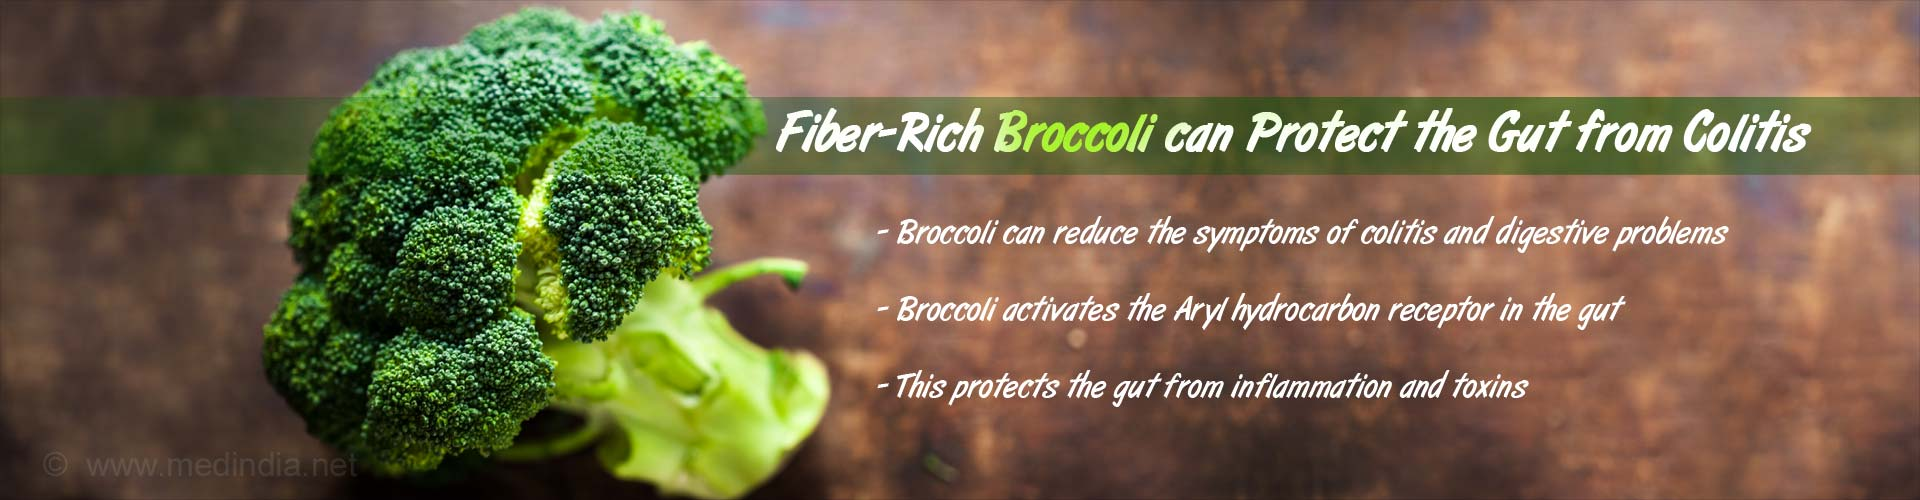 Fiber-rich broccoli can protect the gut from colitis